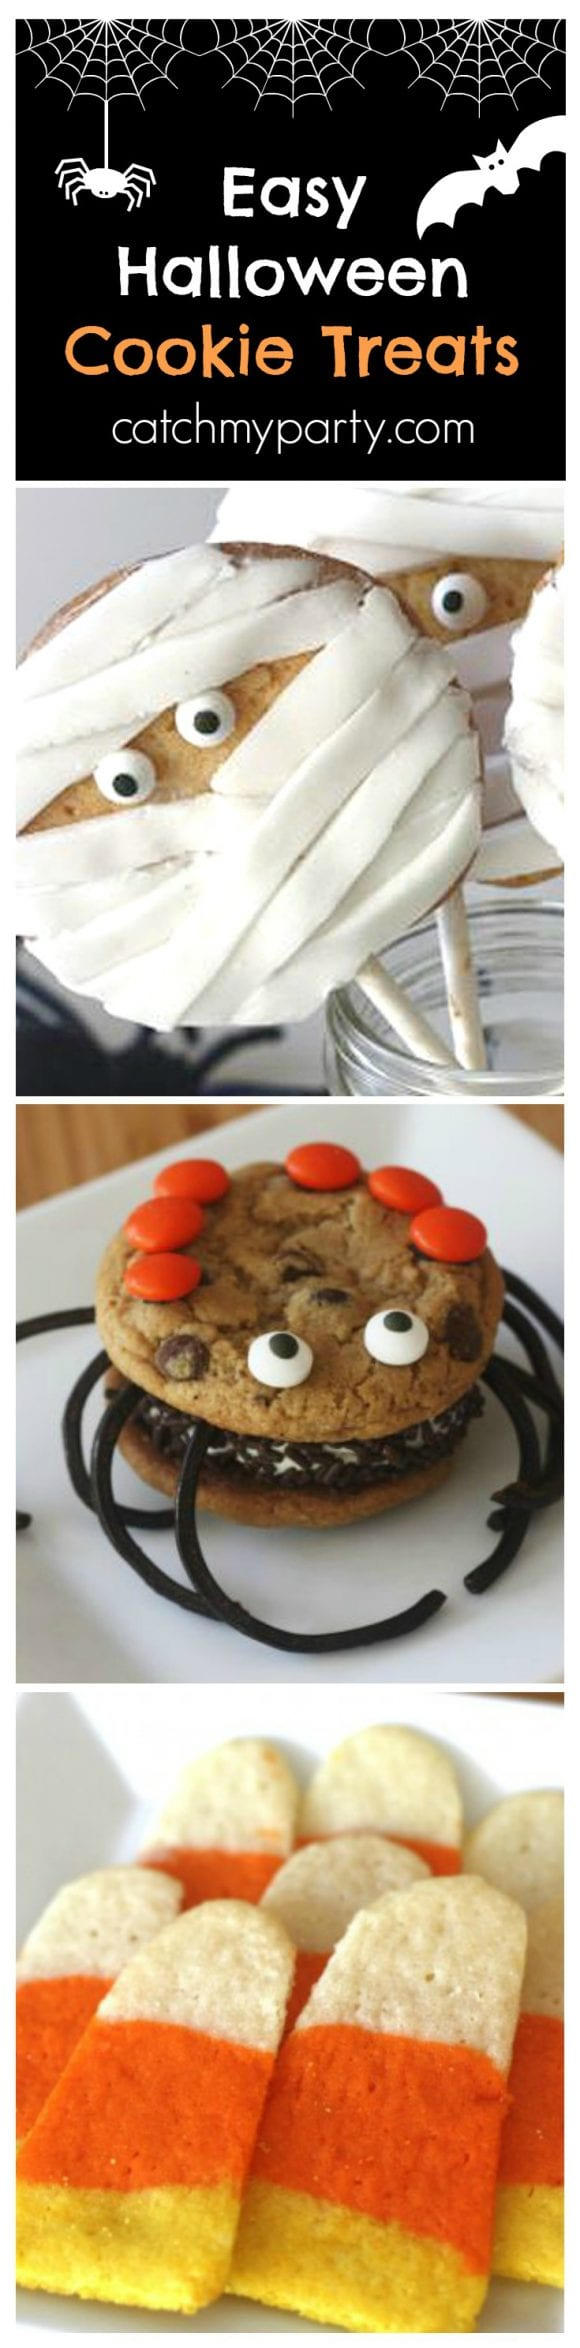 Easy Halloween Cookie Treats | CatchMyParty.com